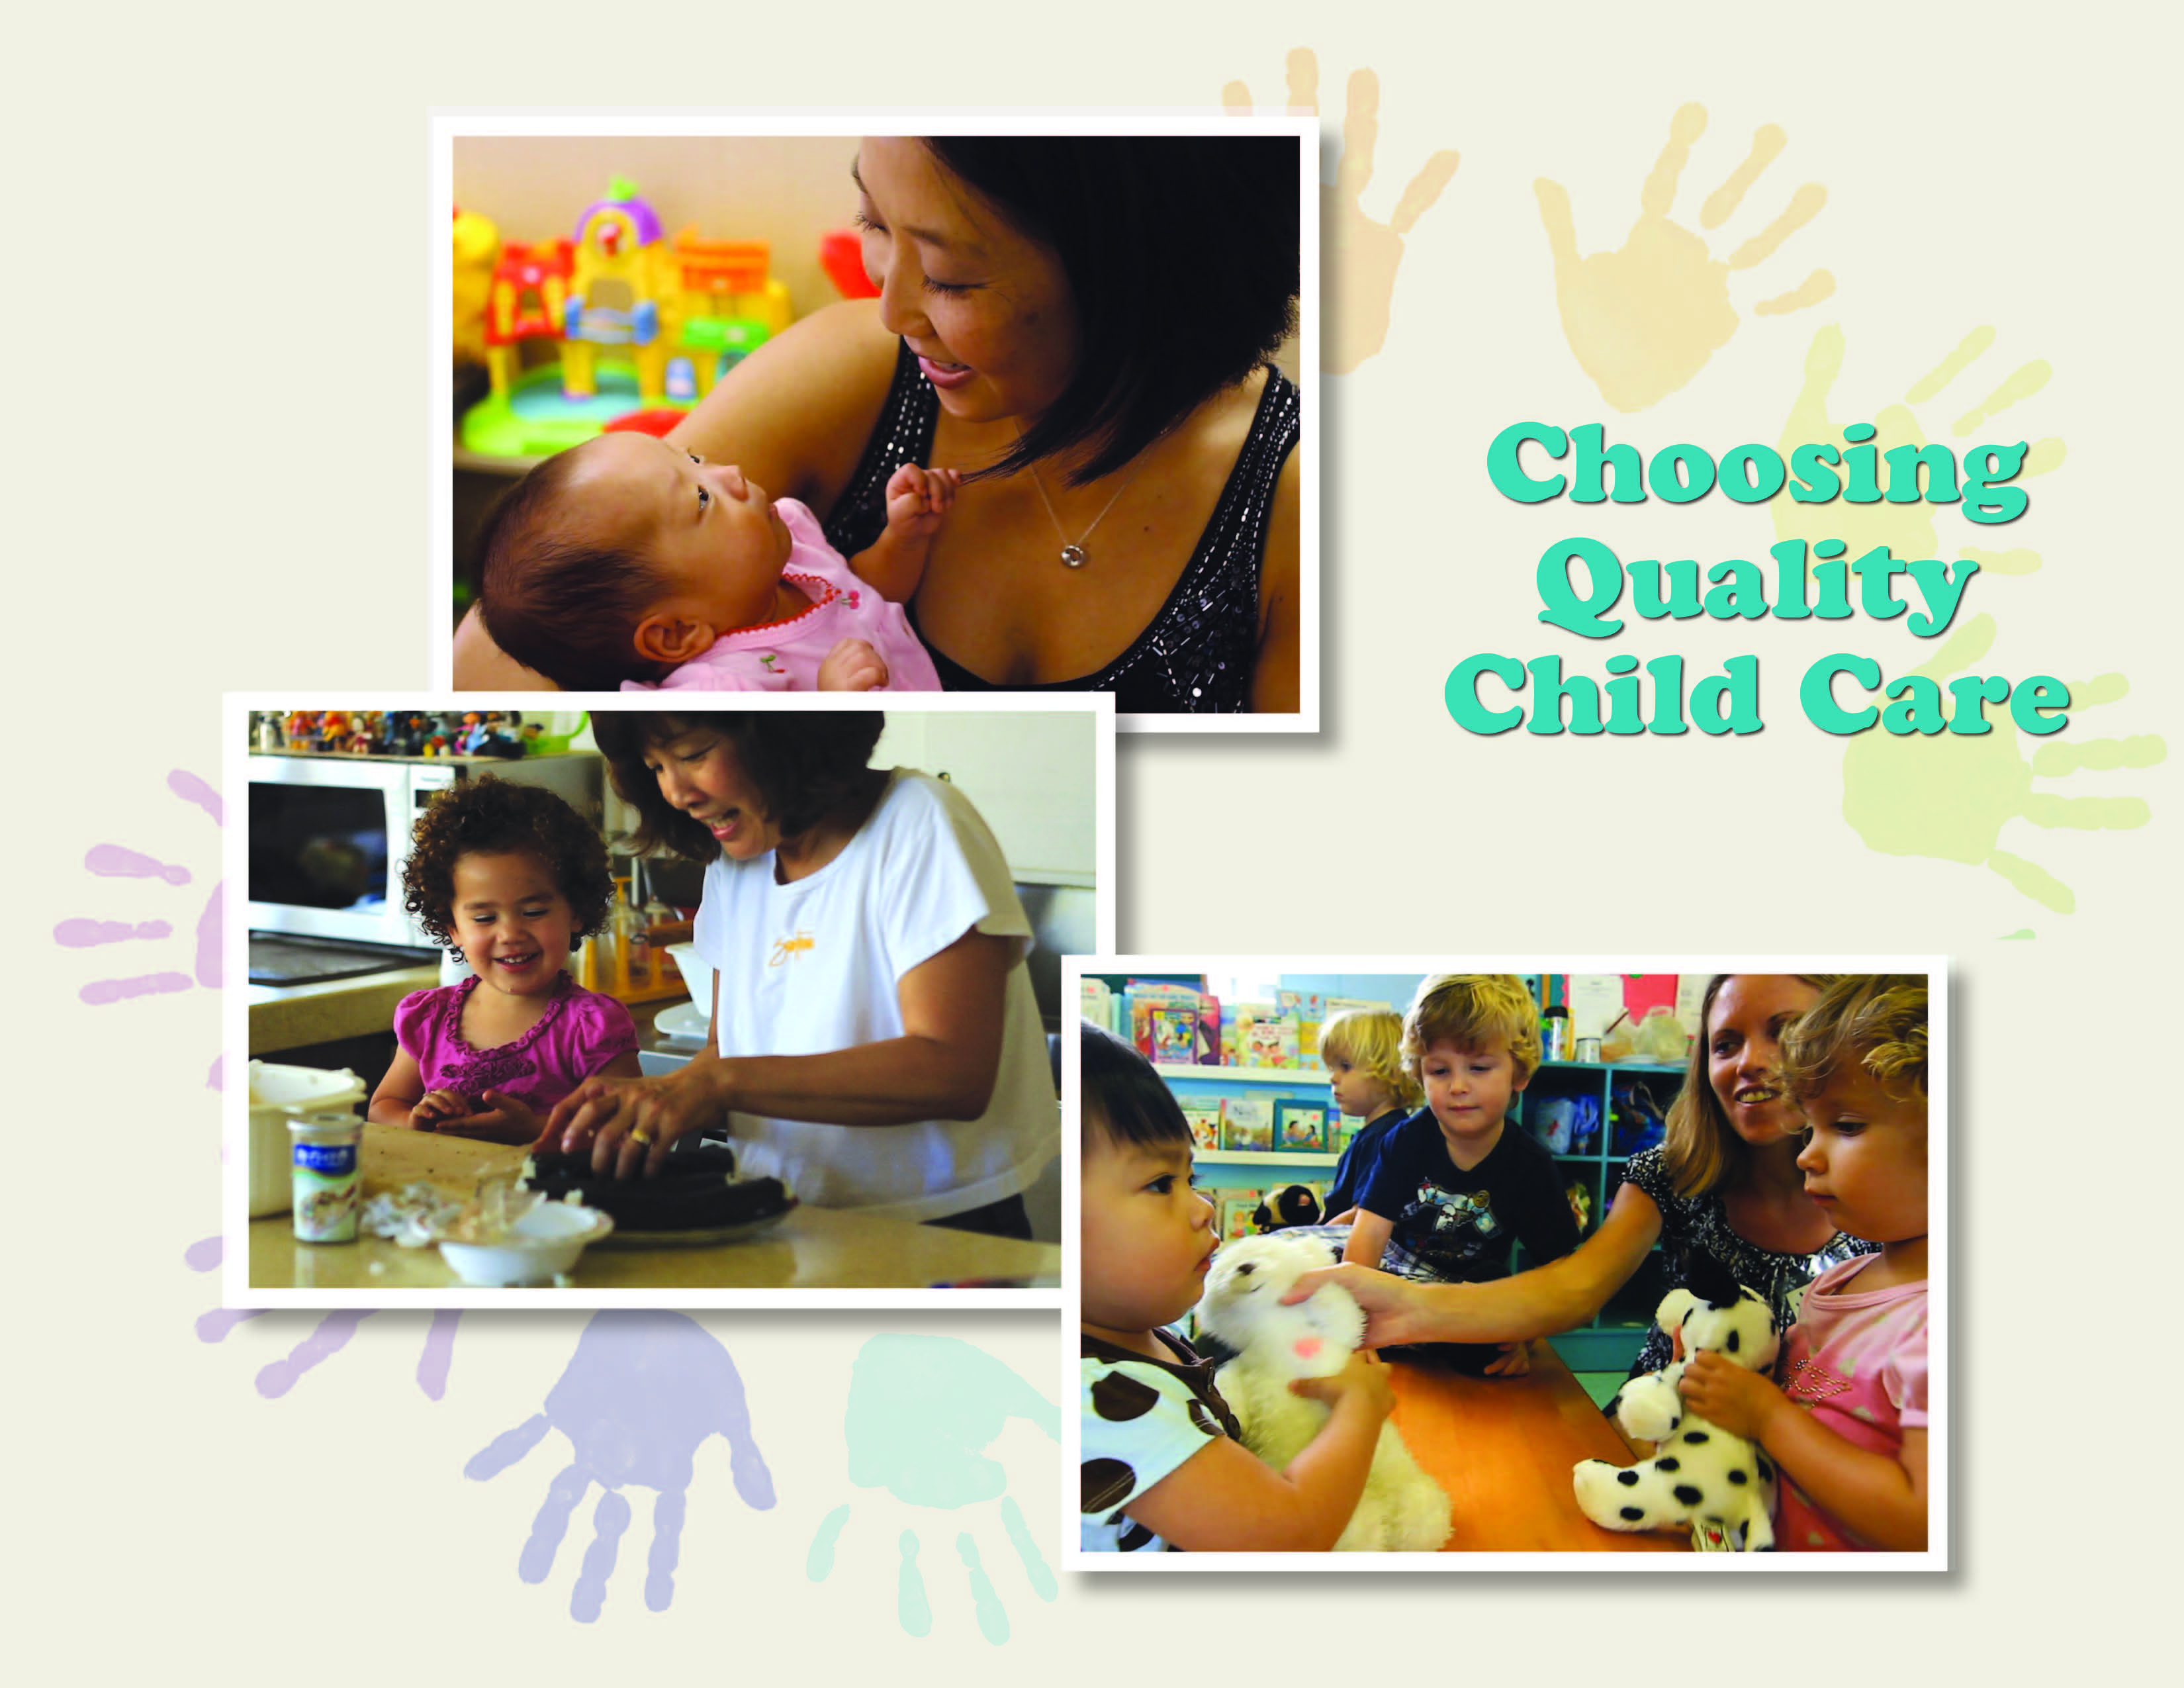 Child Care Images The Choosing Child Care